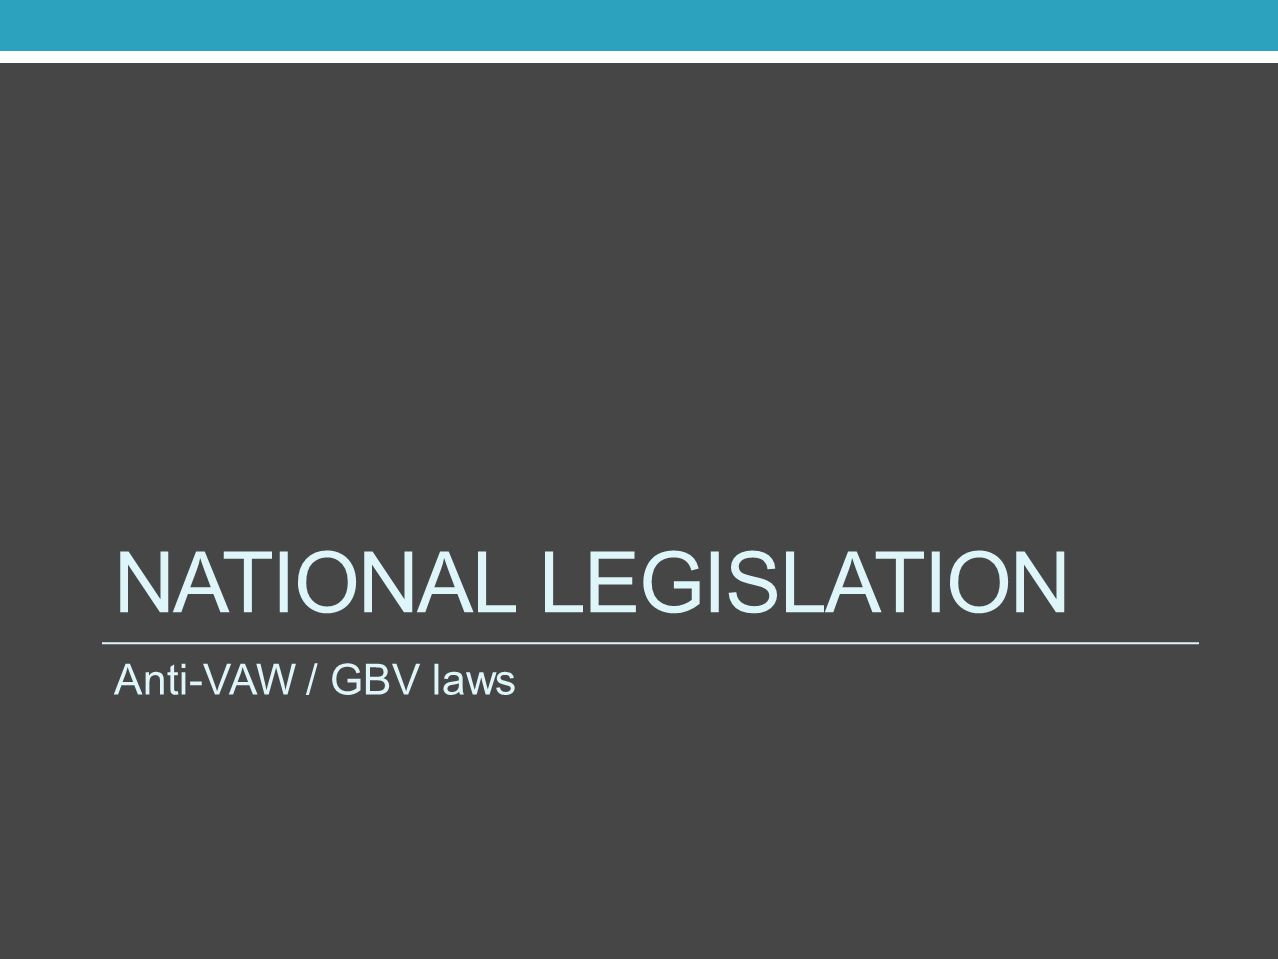 NATIONAL LEGISLATION Anti-VAW / GBV laws